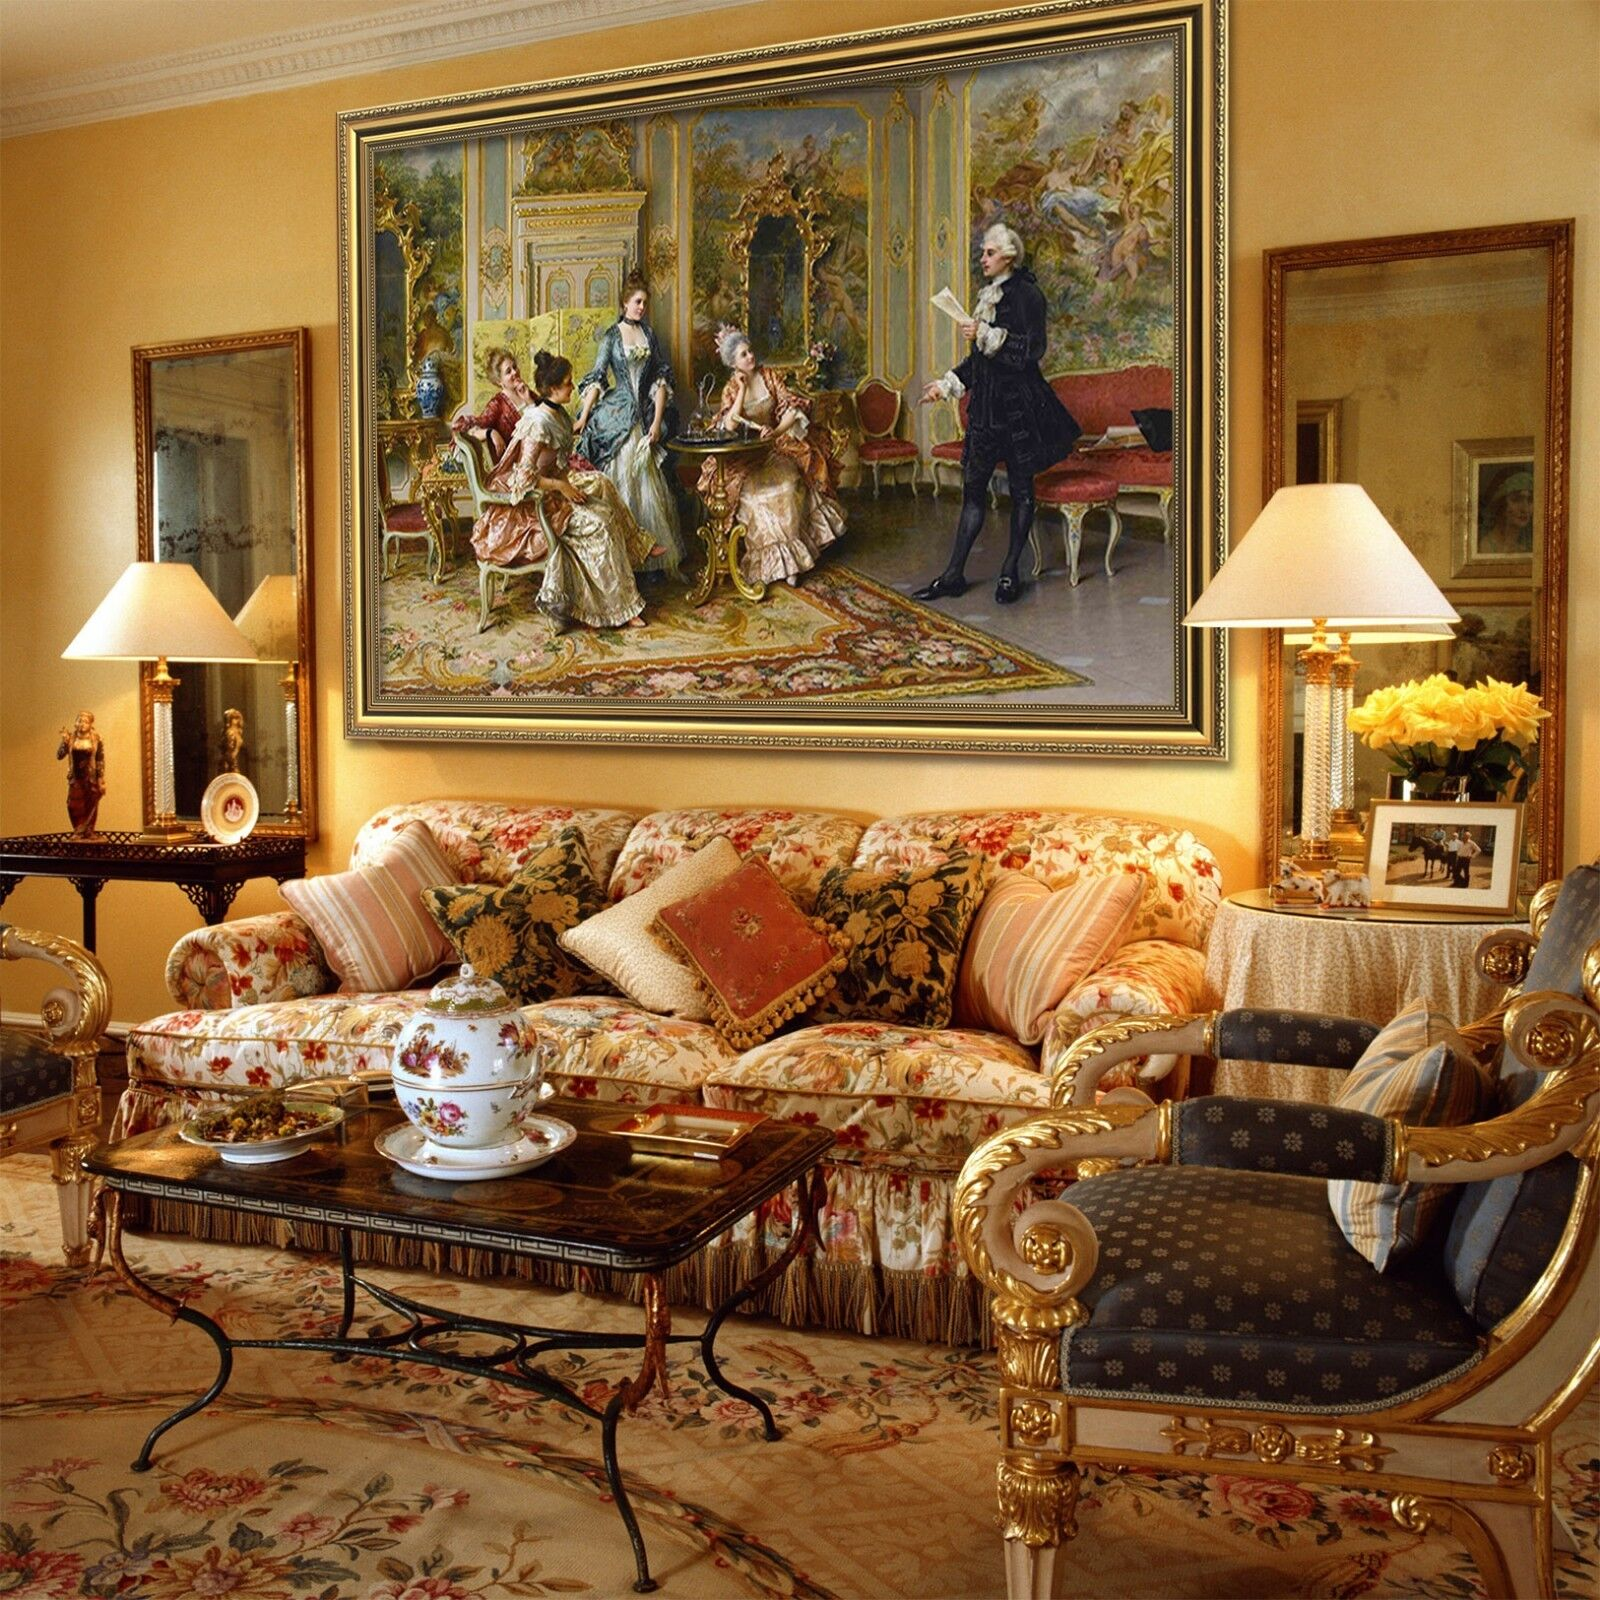 3D Aristocratic Woma 60 Framed Poster Home Decor Print Painting Art AJ WALLPAPER